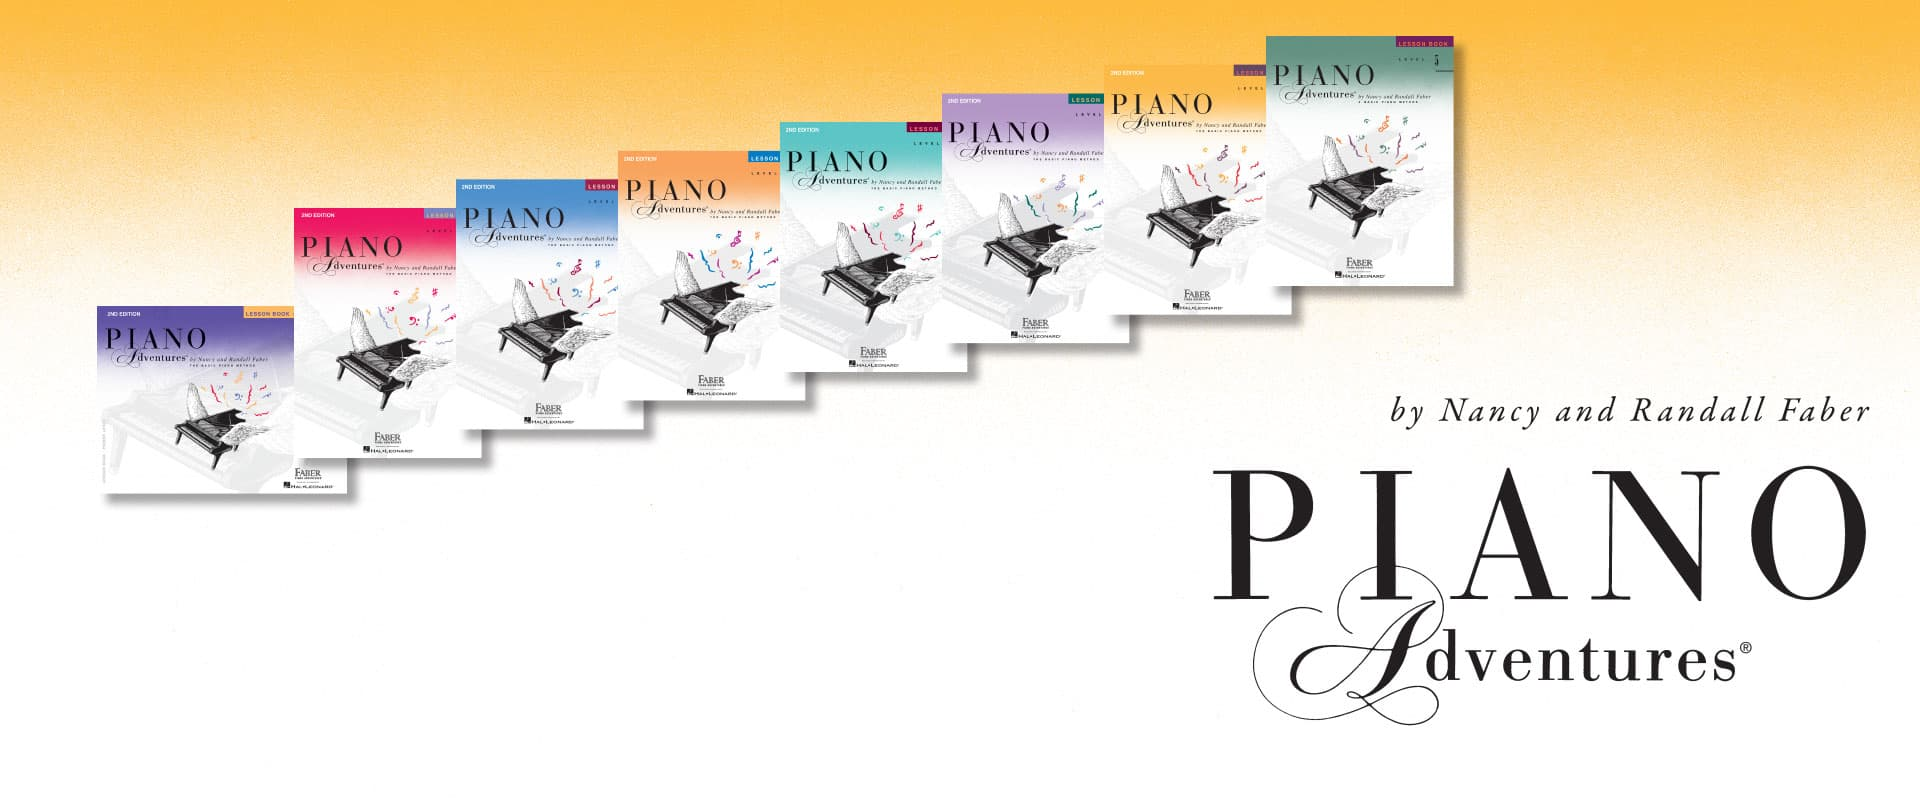 Books and Manuals Guide on How to Play Piano